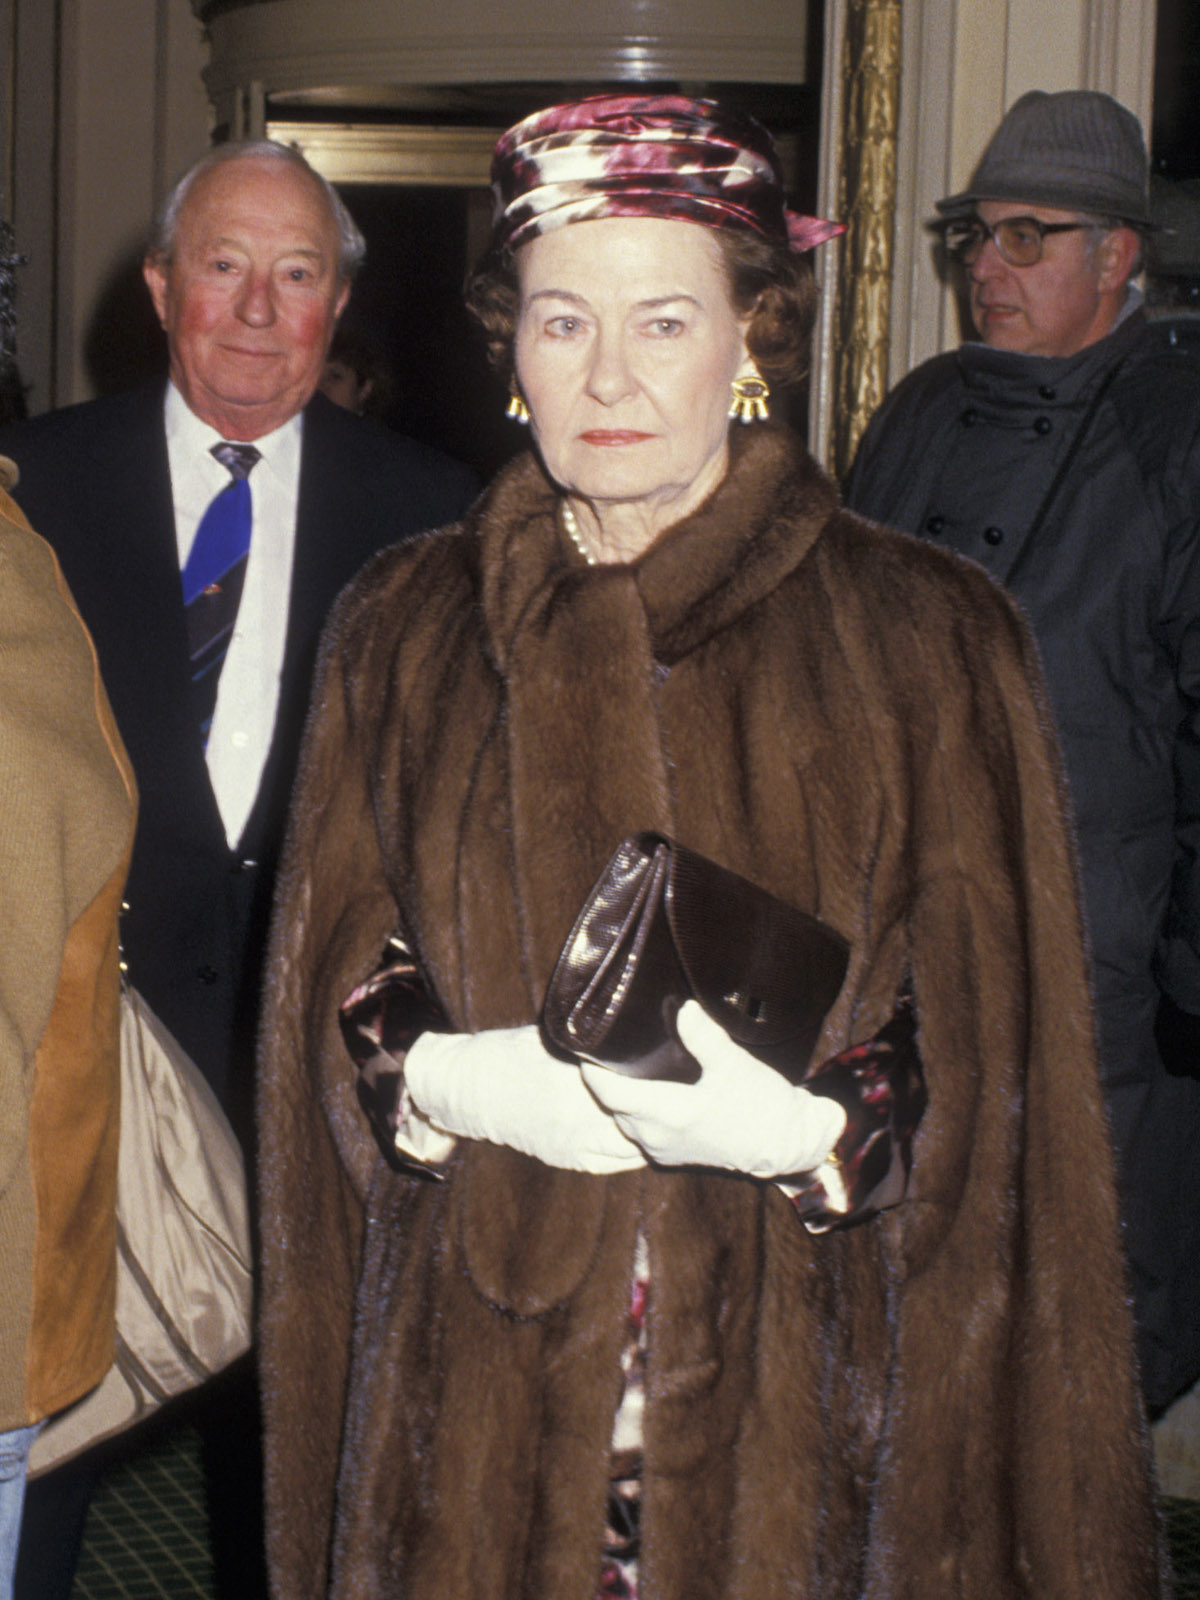 Nancy Lee Bass, wedding of Sid Bass and Mercedes Kellogg at Plaza Hotel in New York City, Dec. 10, 1988